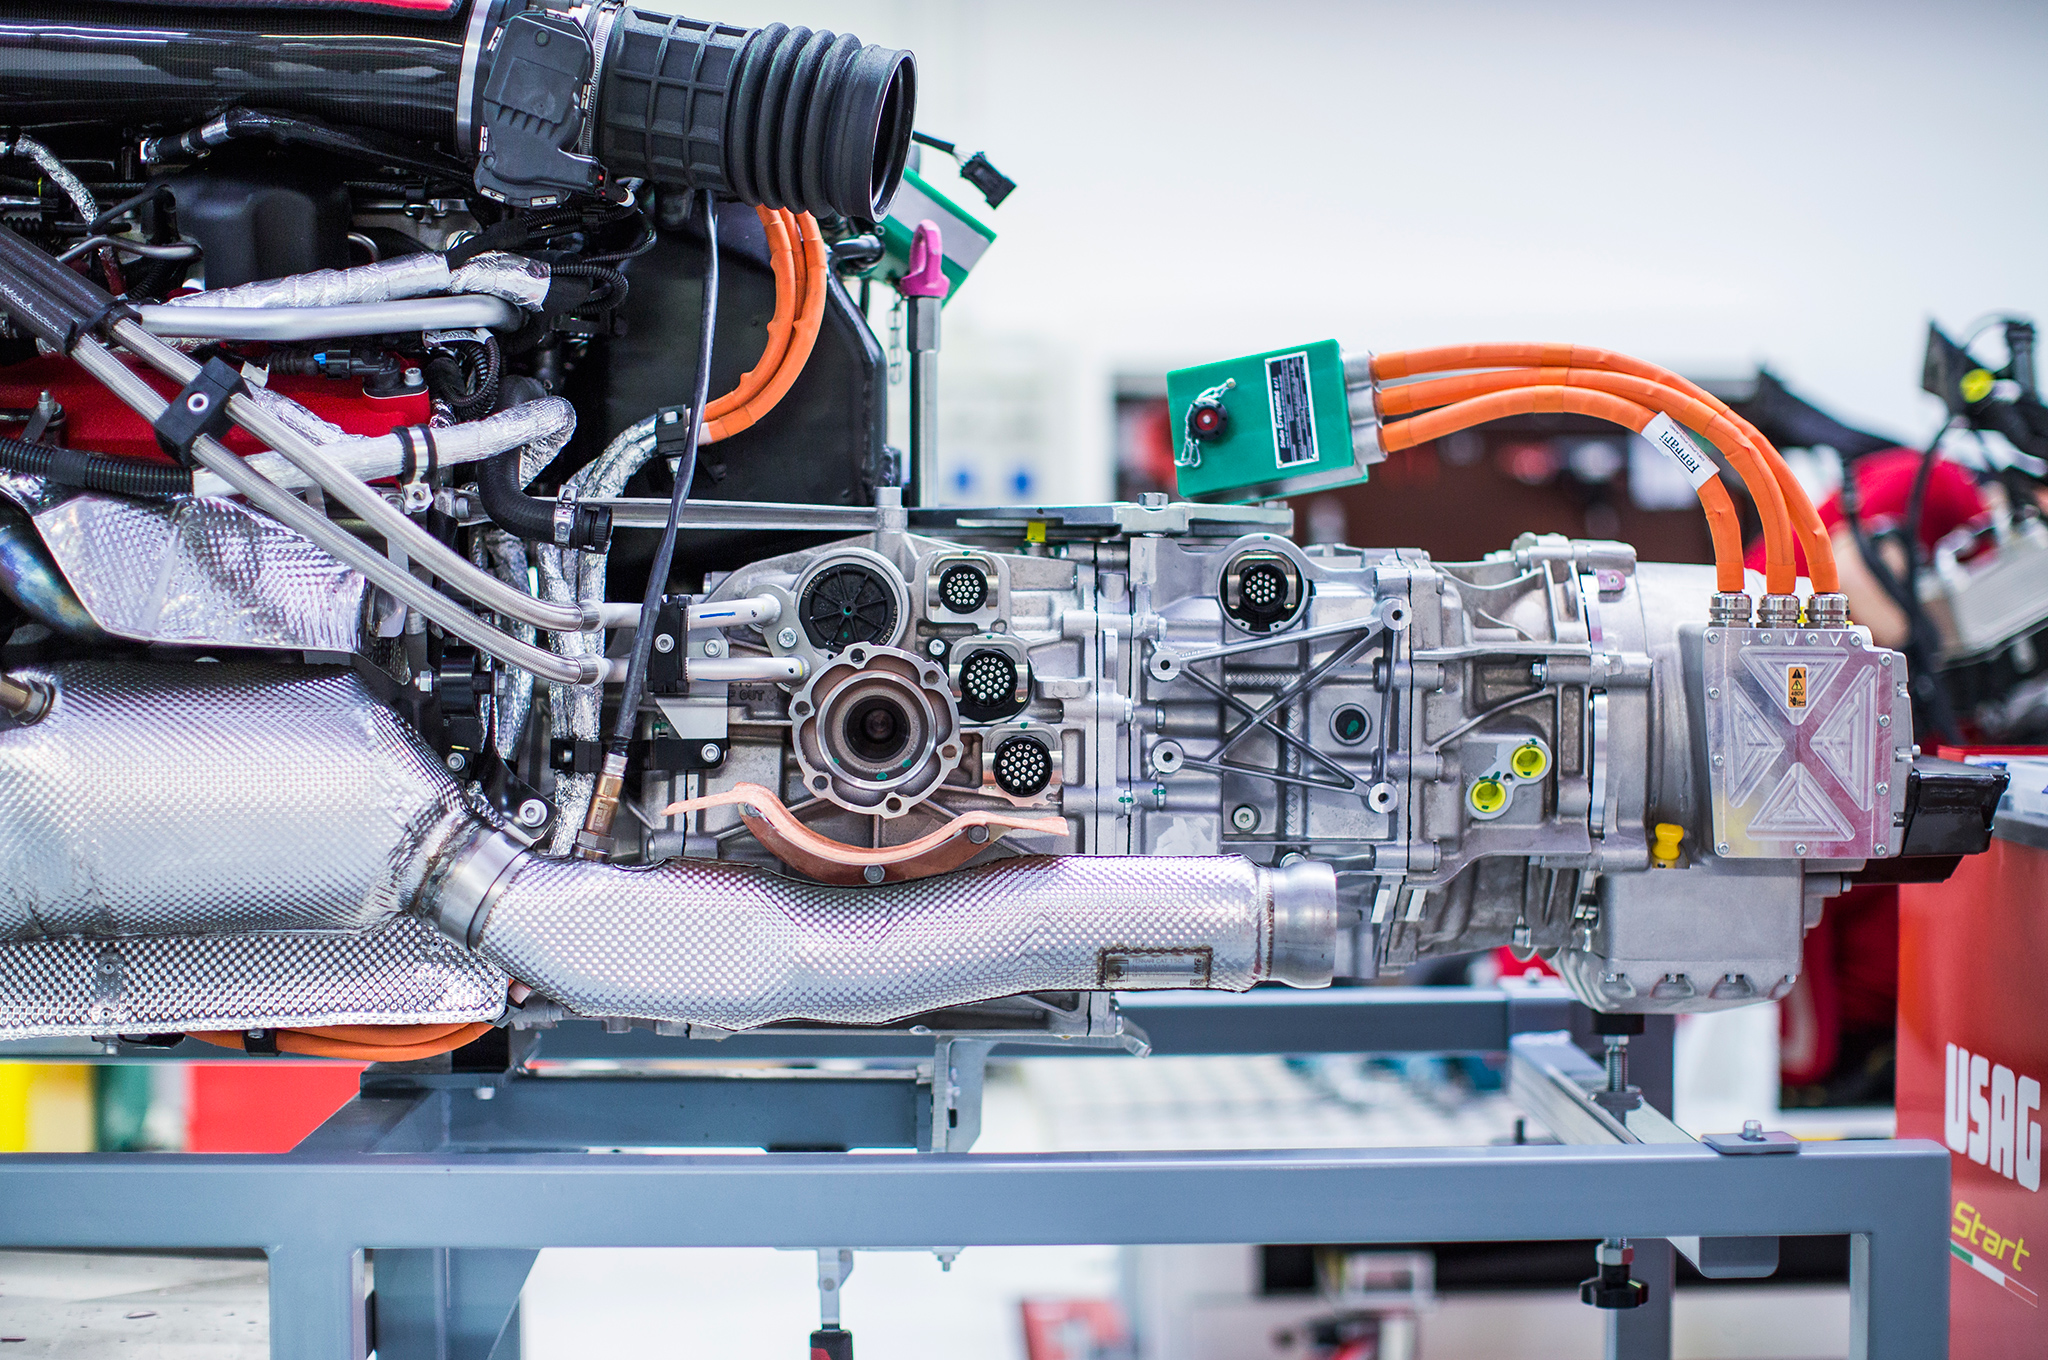 The V-12 engine is there, the seven-speed dual-clutch gearbox is there, and the electric motor is there, waiting expectantly for the electric inverters to be attached to its orange cables.